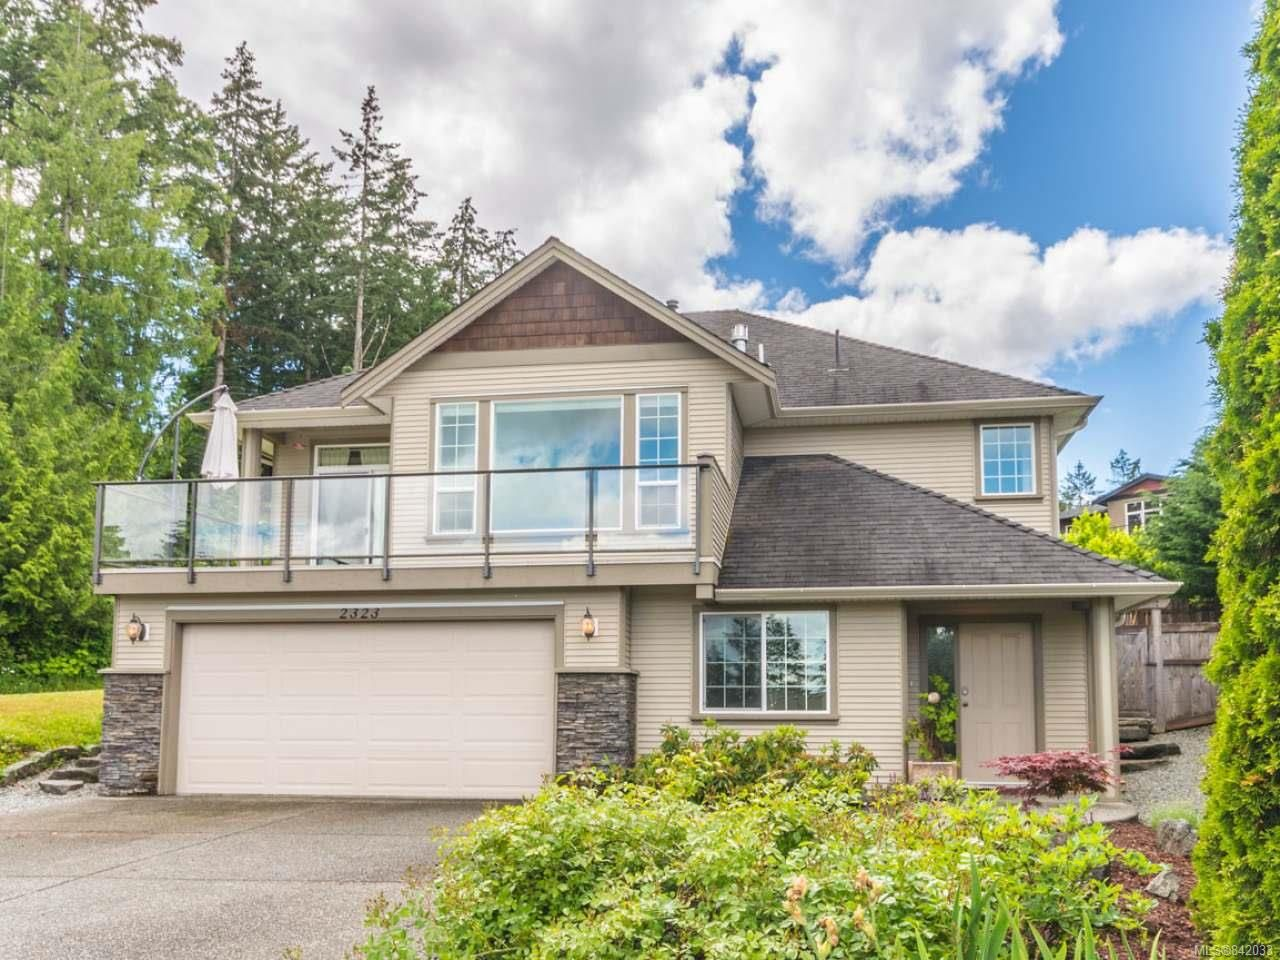 Main Photo: 2323 GLENFORD PLACE in NANAIMO: Na Chase River House for sale (Nanaimo)  : MLS®# 842033